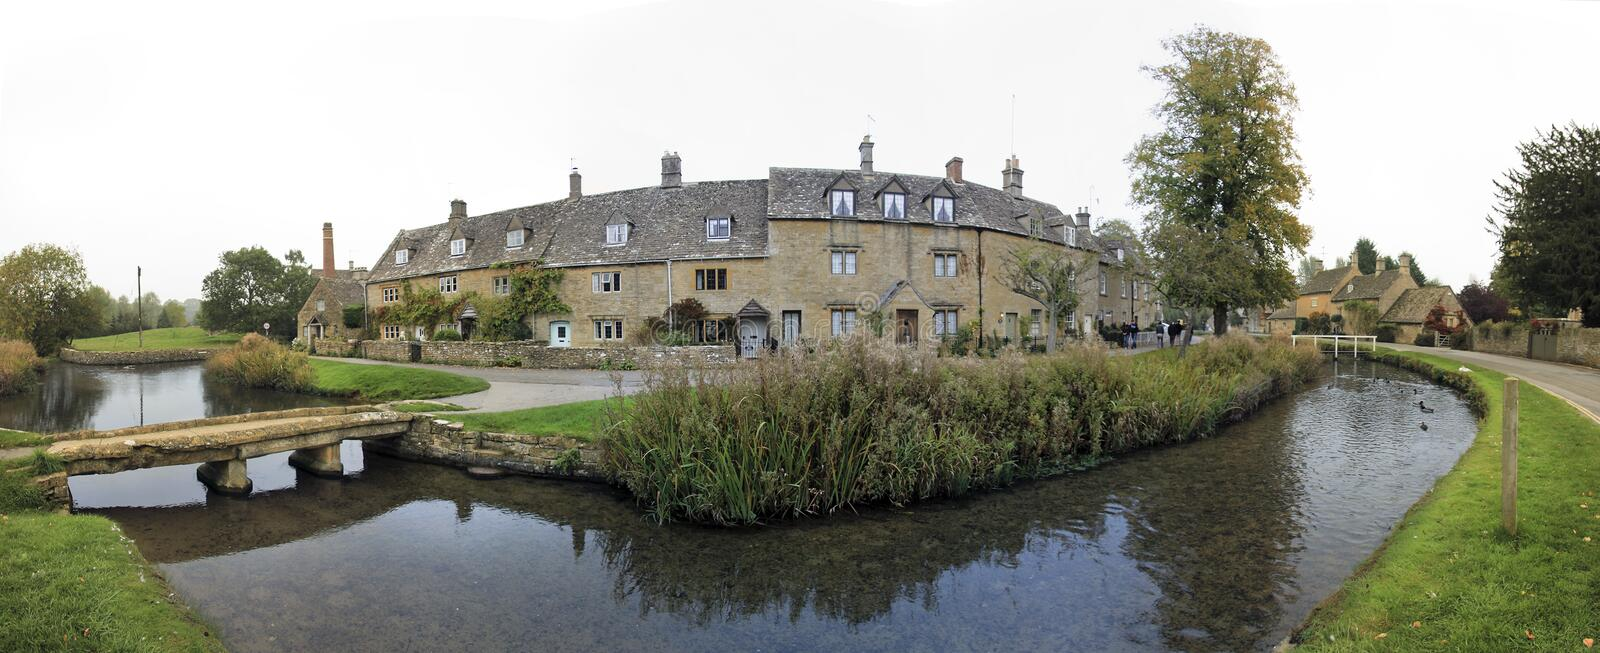 Lower slaughter cotswalds village oxfordshire uk. Panorama of the river eye winding through the quaint village of lower slaughter in oxfordshire england past royalty free stock images